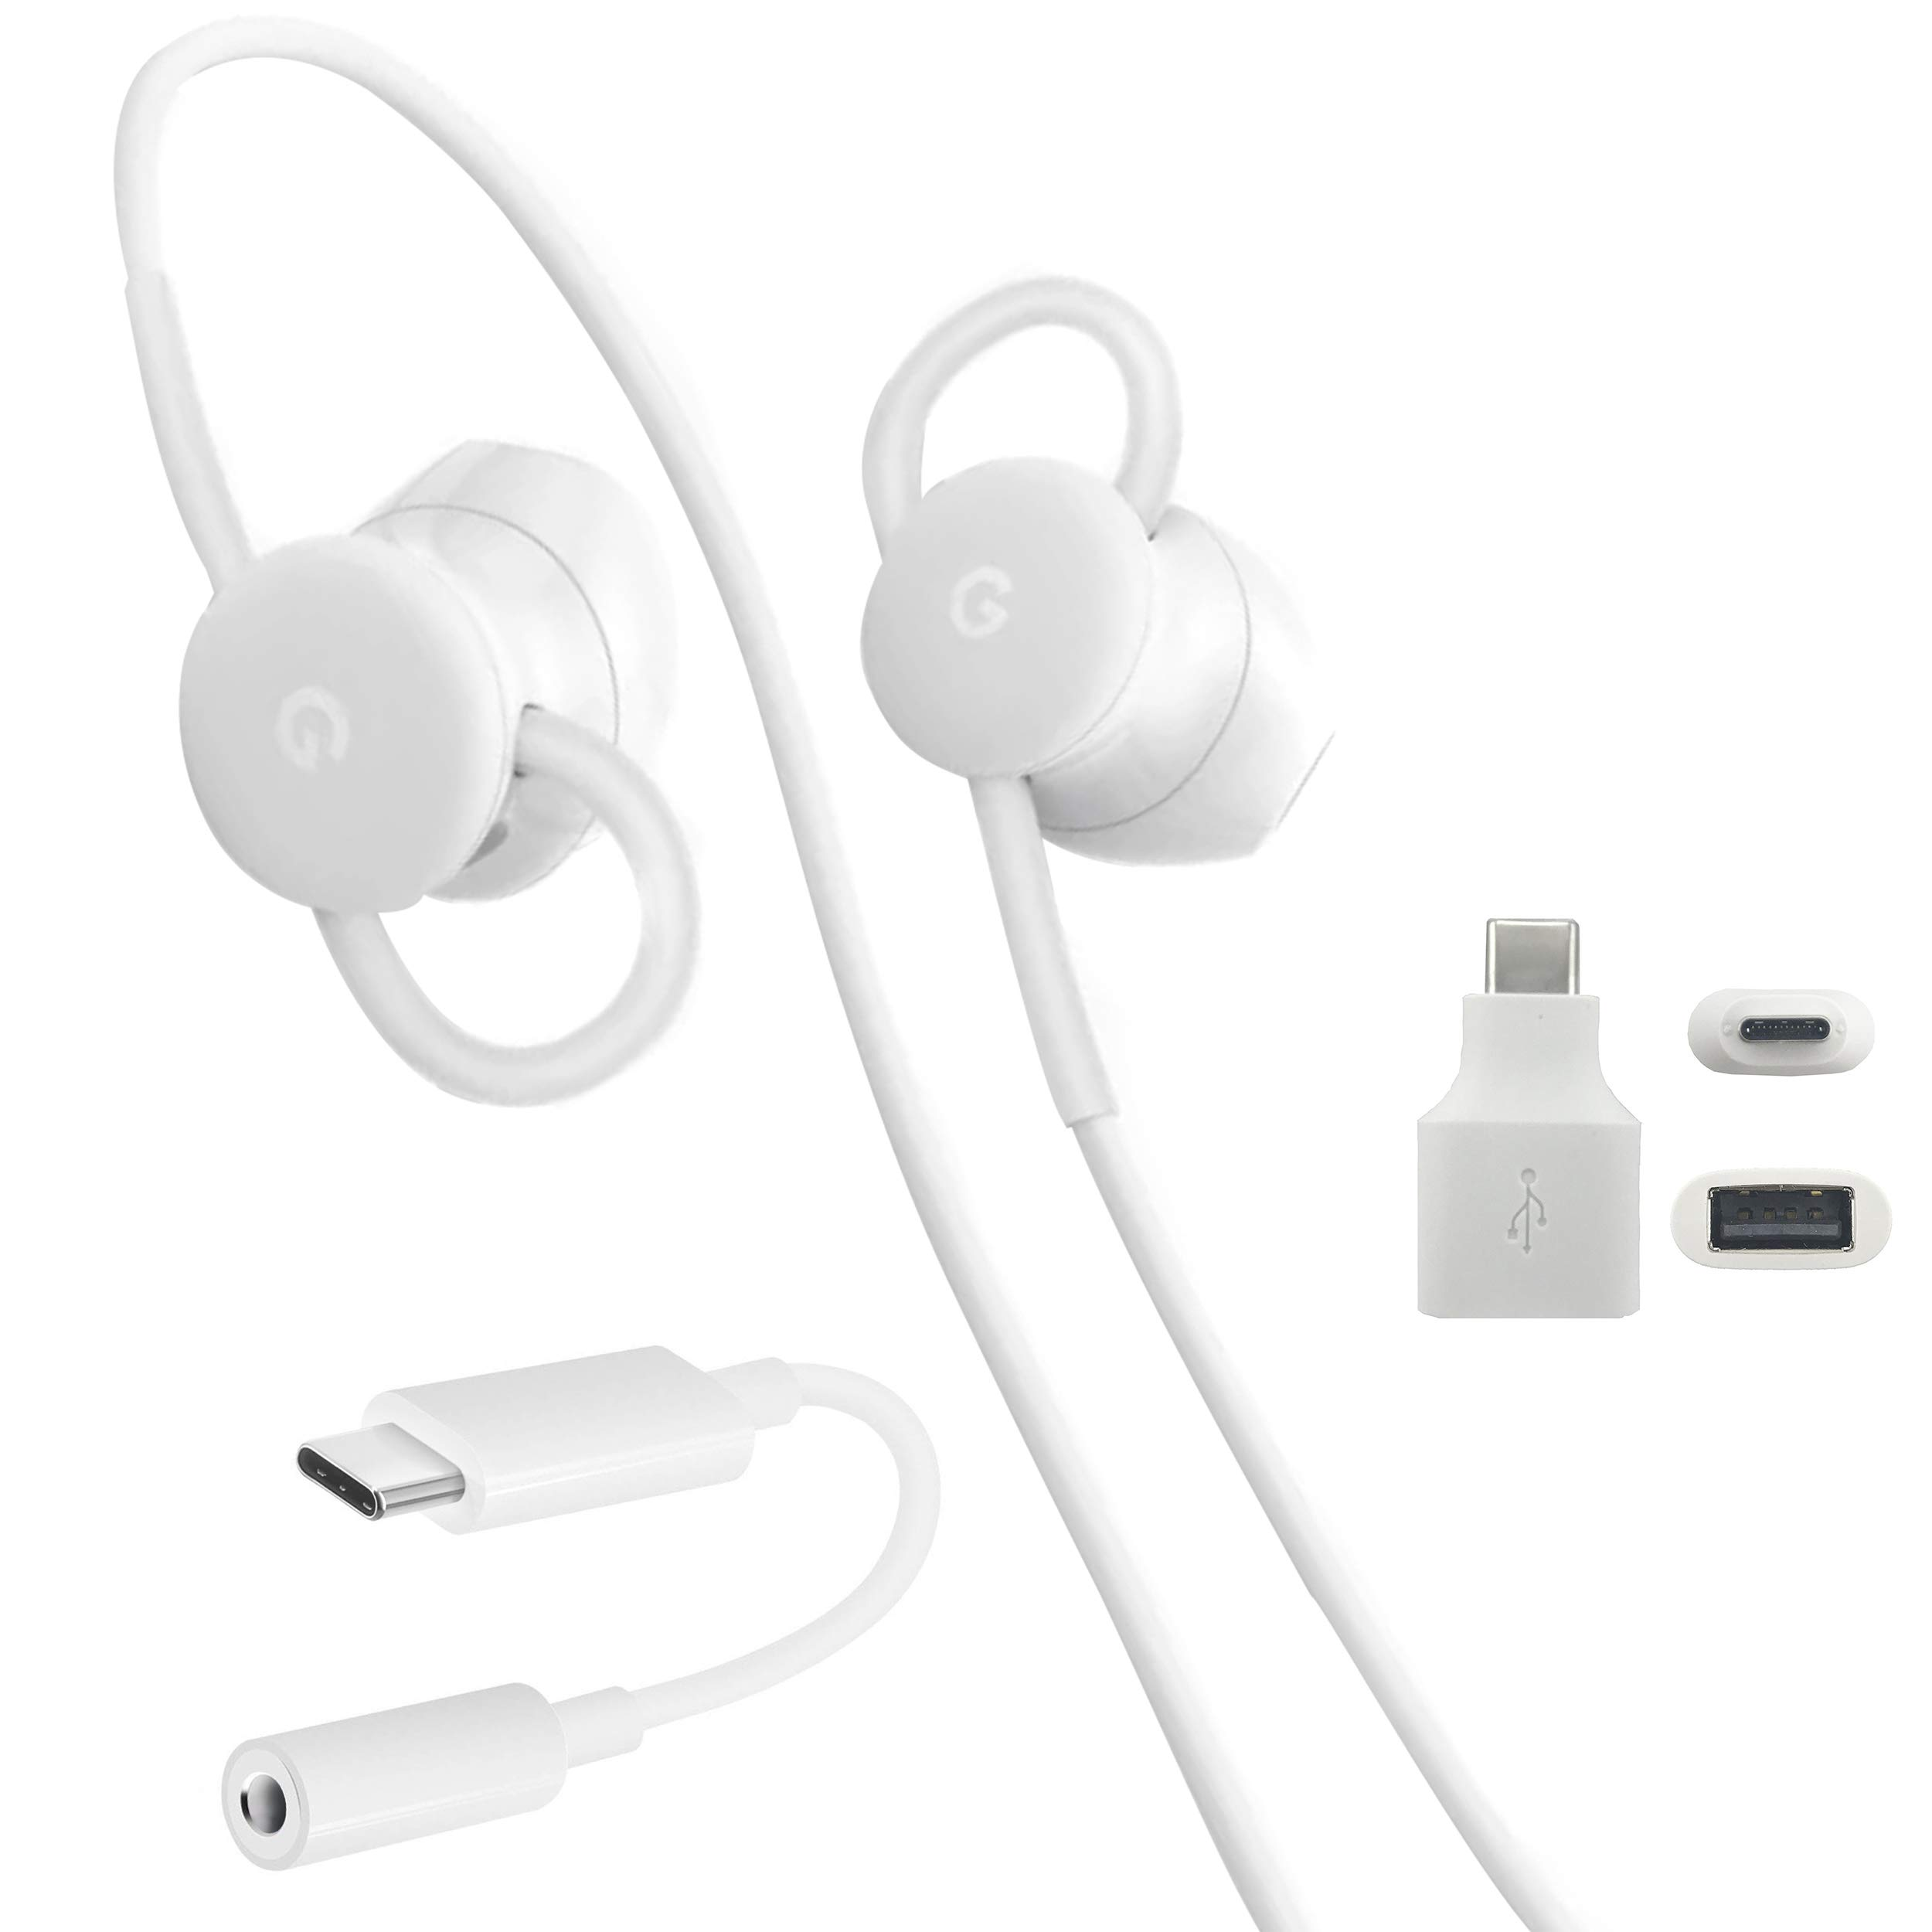 USB-C Earbuds, USB-C to 3.5mm Adapter, USB-C to USB 3.0 Adapter, for Google Pixel Devices - Accessory Combo Kit by Phihong Technology co. (Image #1)